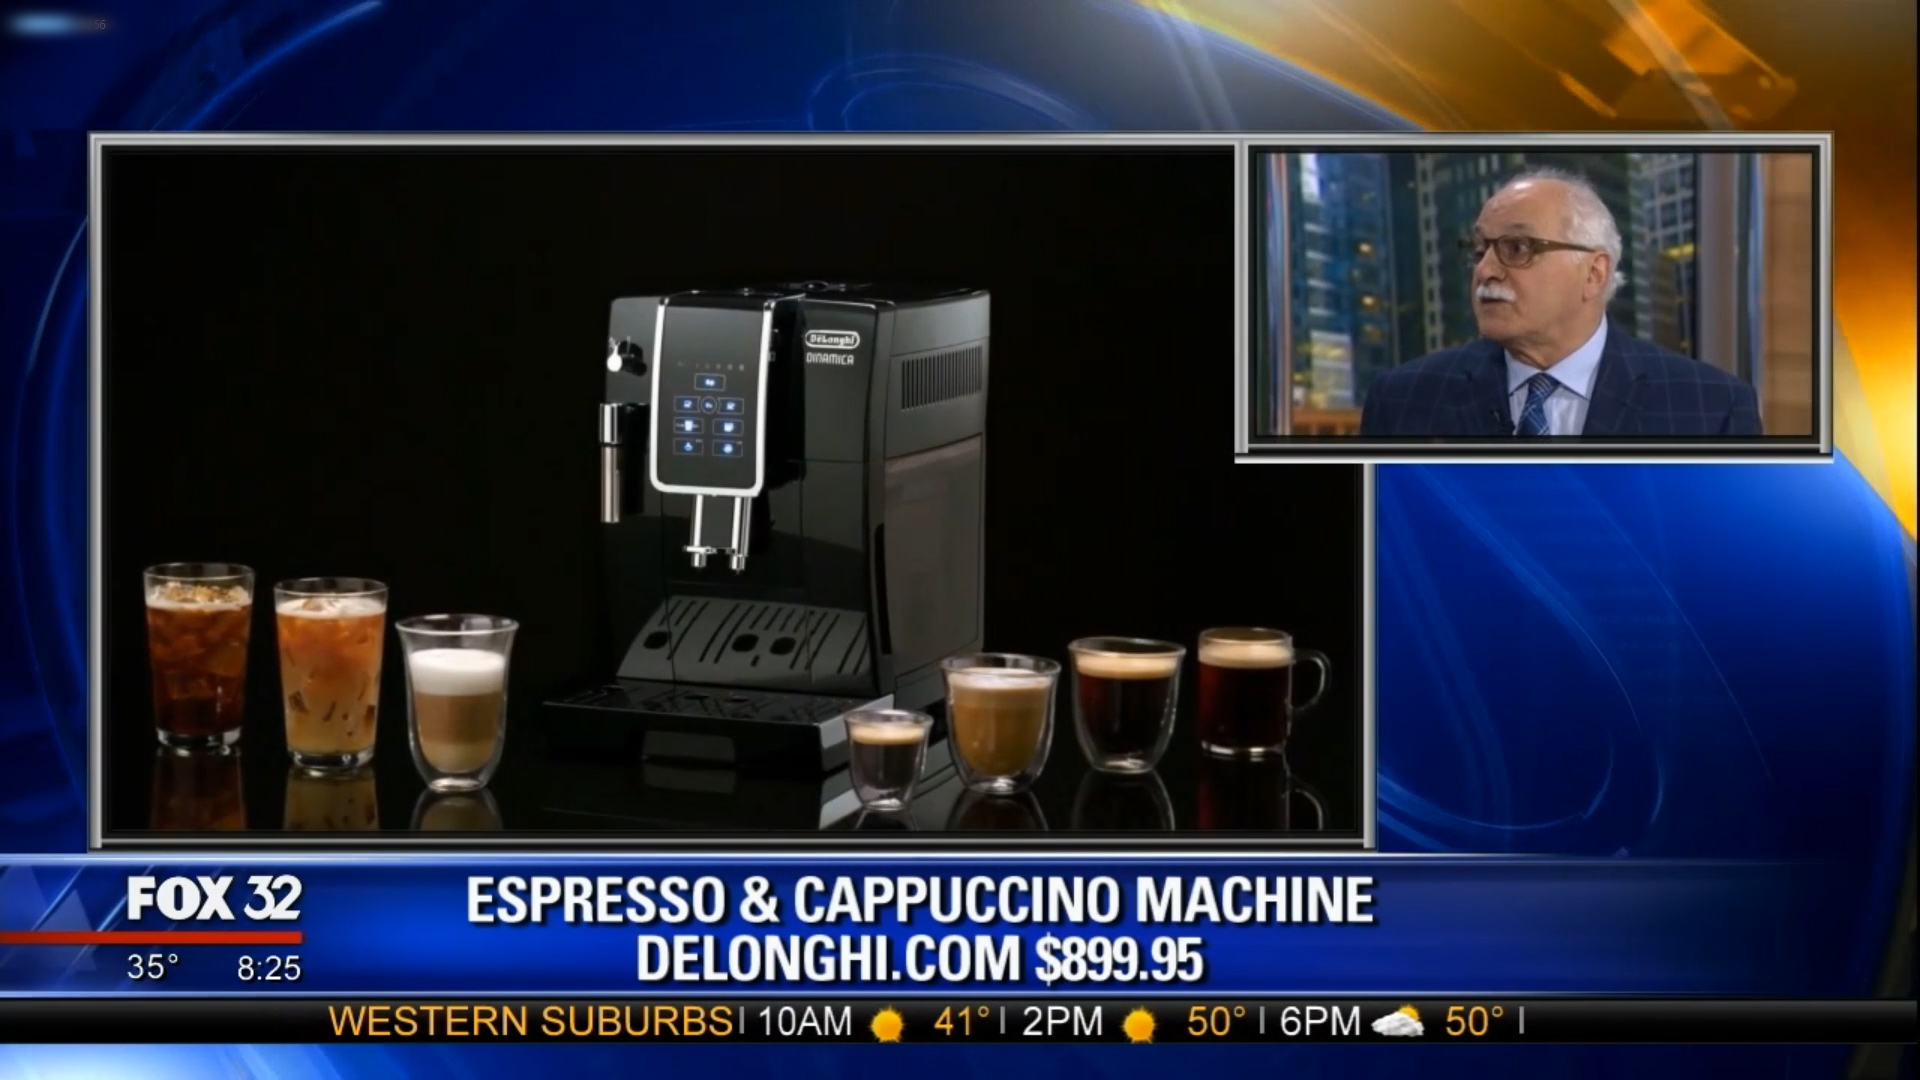 DINAMICA ESPRESSO & CAPPUCCINO MACHINE by DELONGHI - $899.95Shop Now